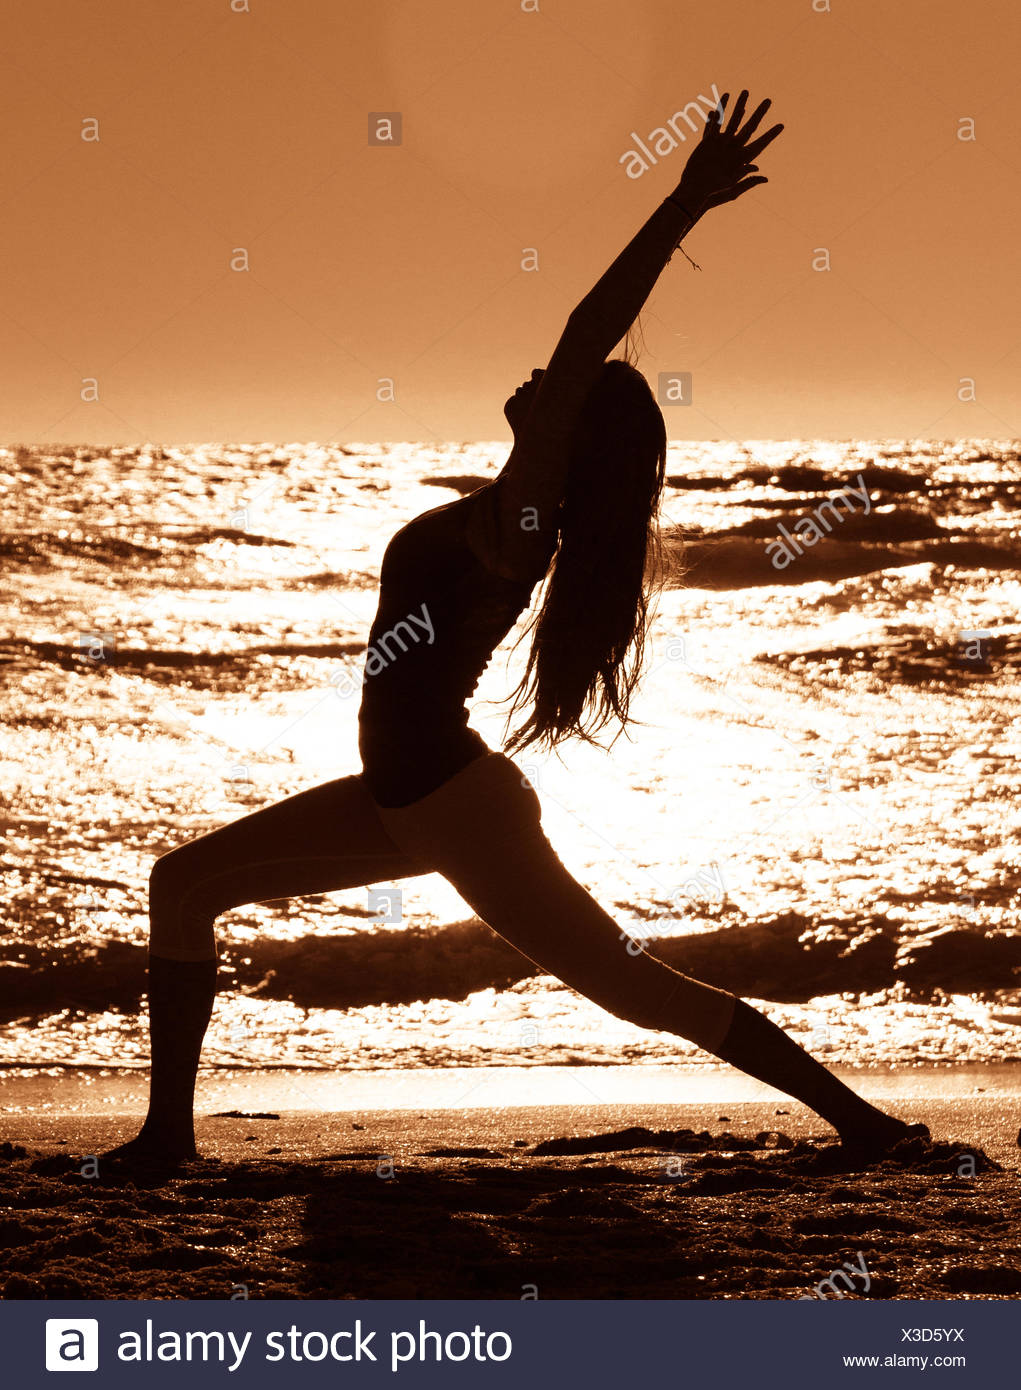 Silhouette of Woman practicing warrior 1 yoga pose on beach - Stock Image